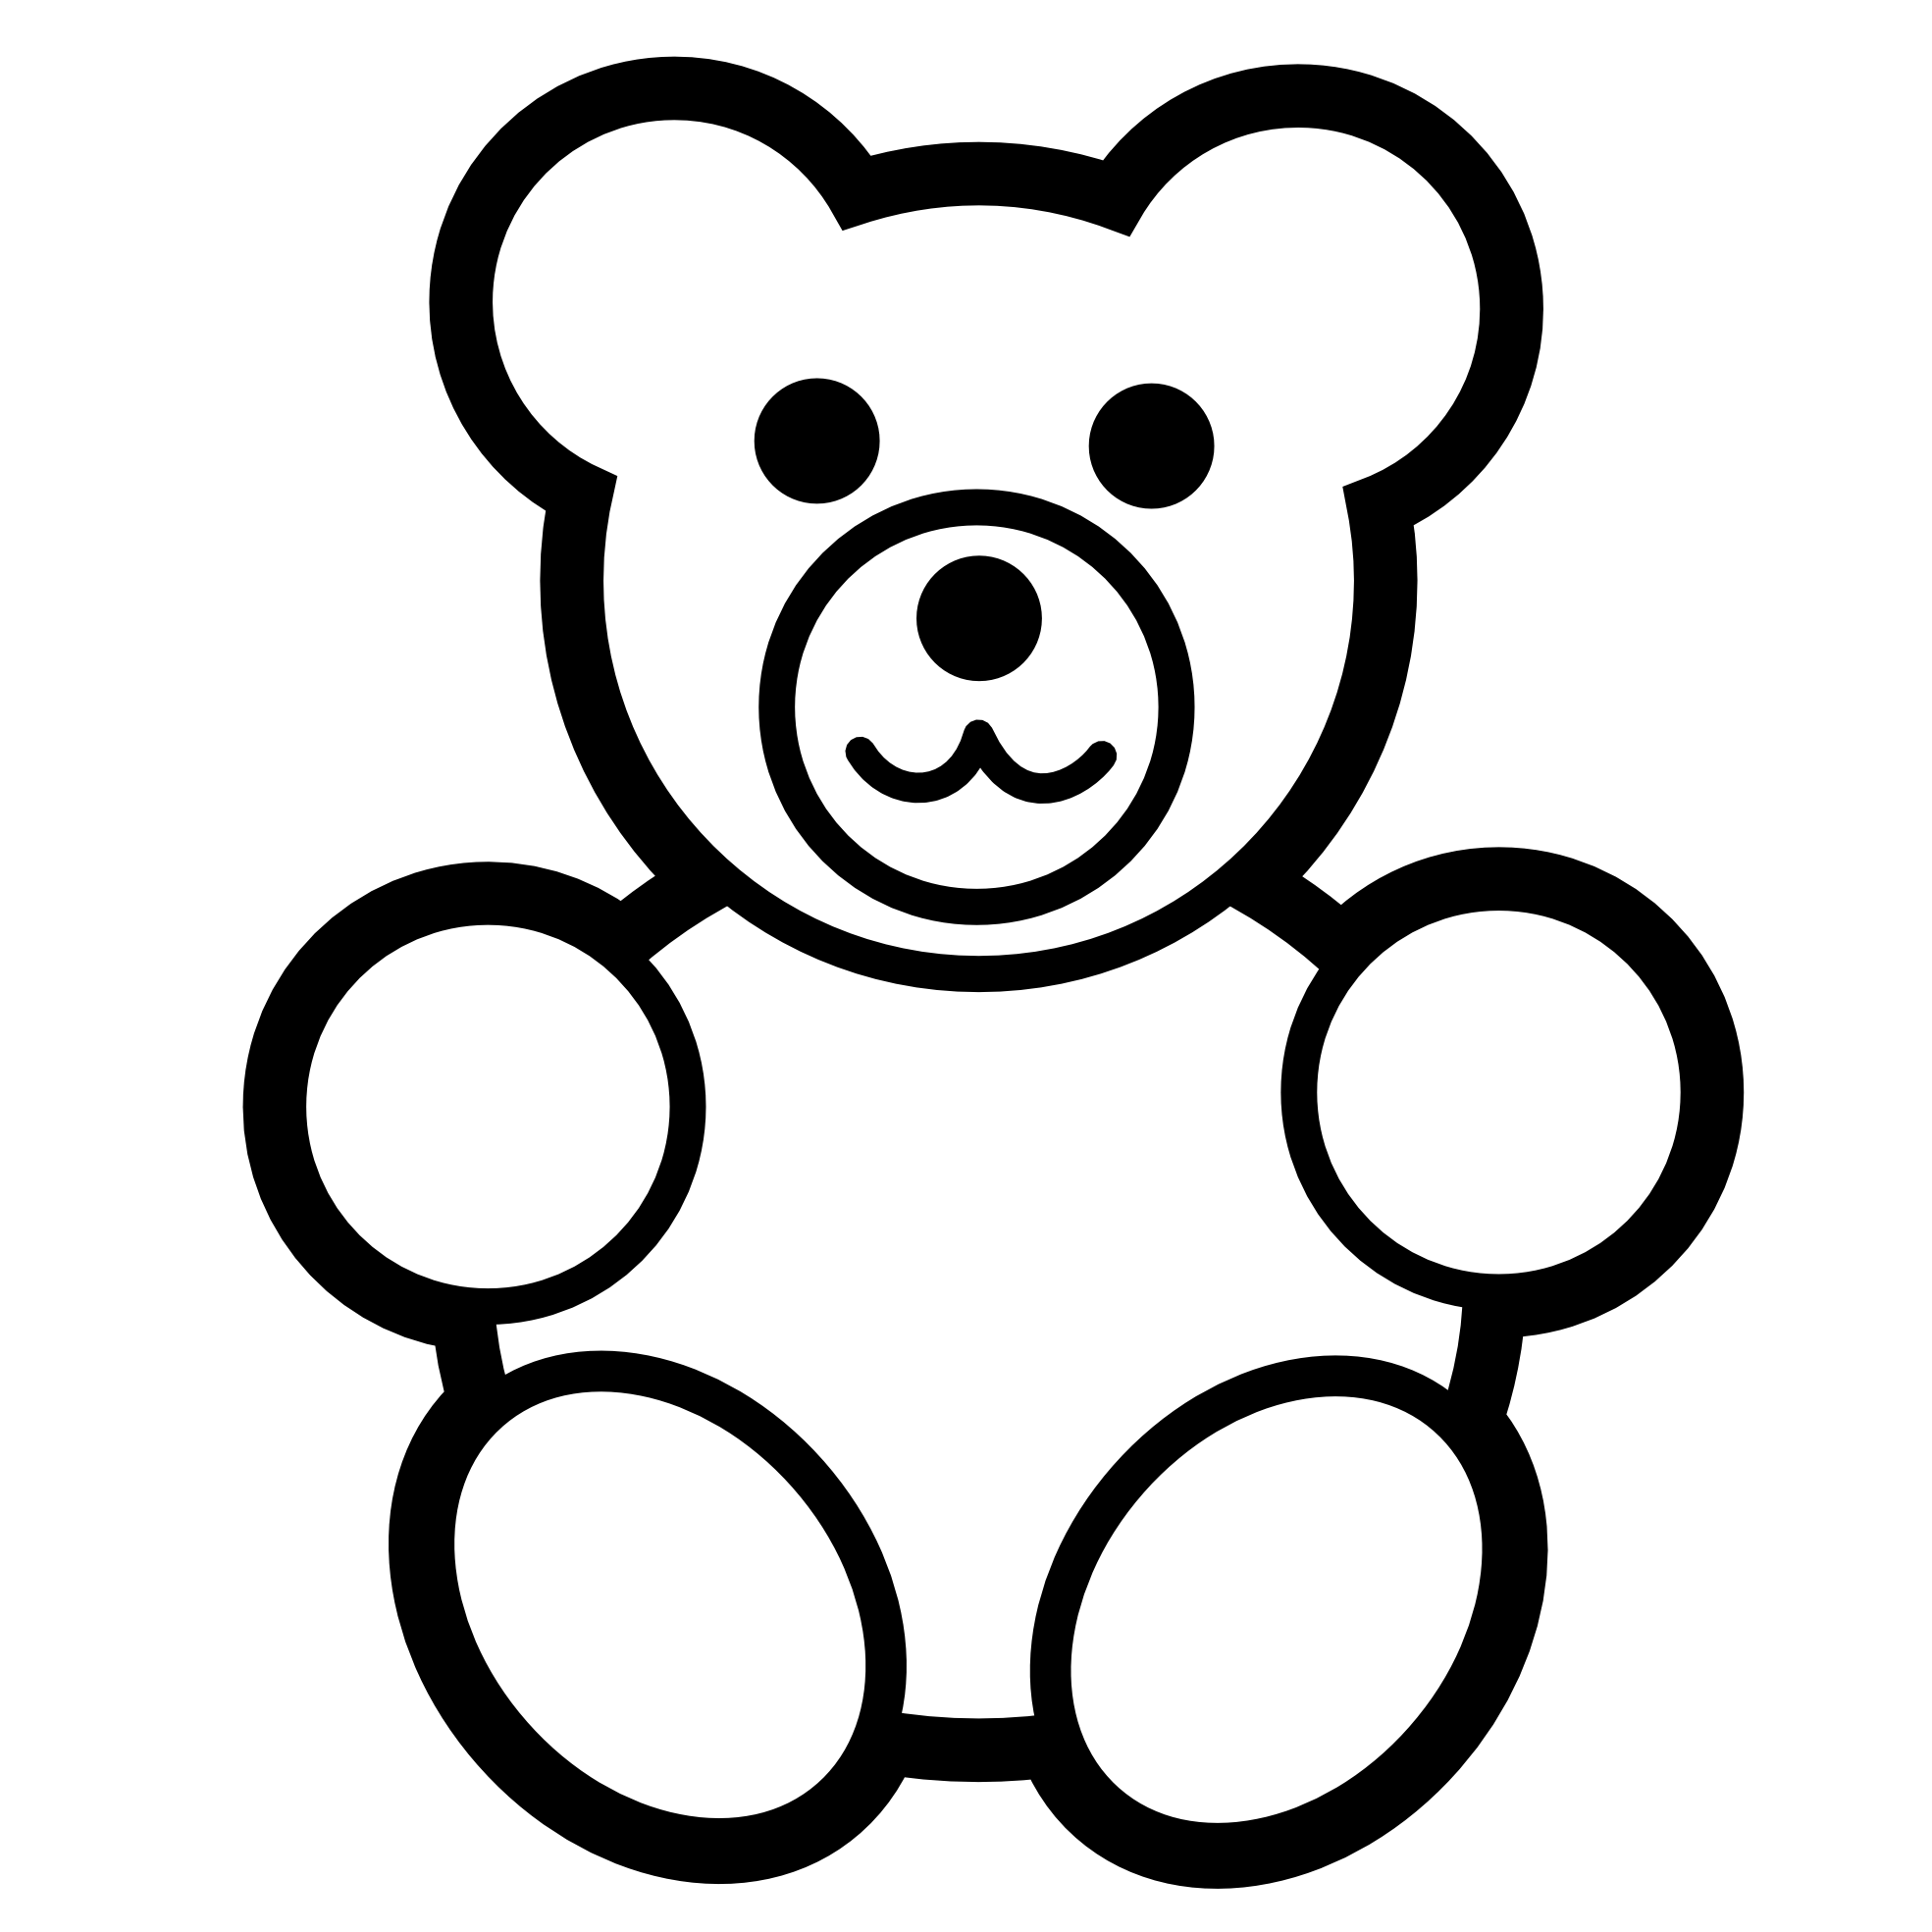 hight resolution of teddy bear black and white panda free worm clipart outline